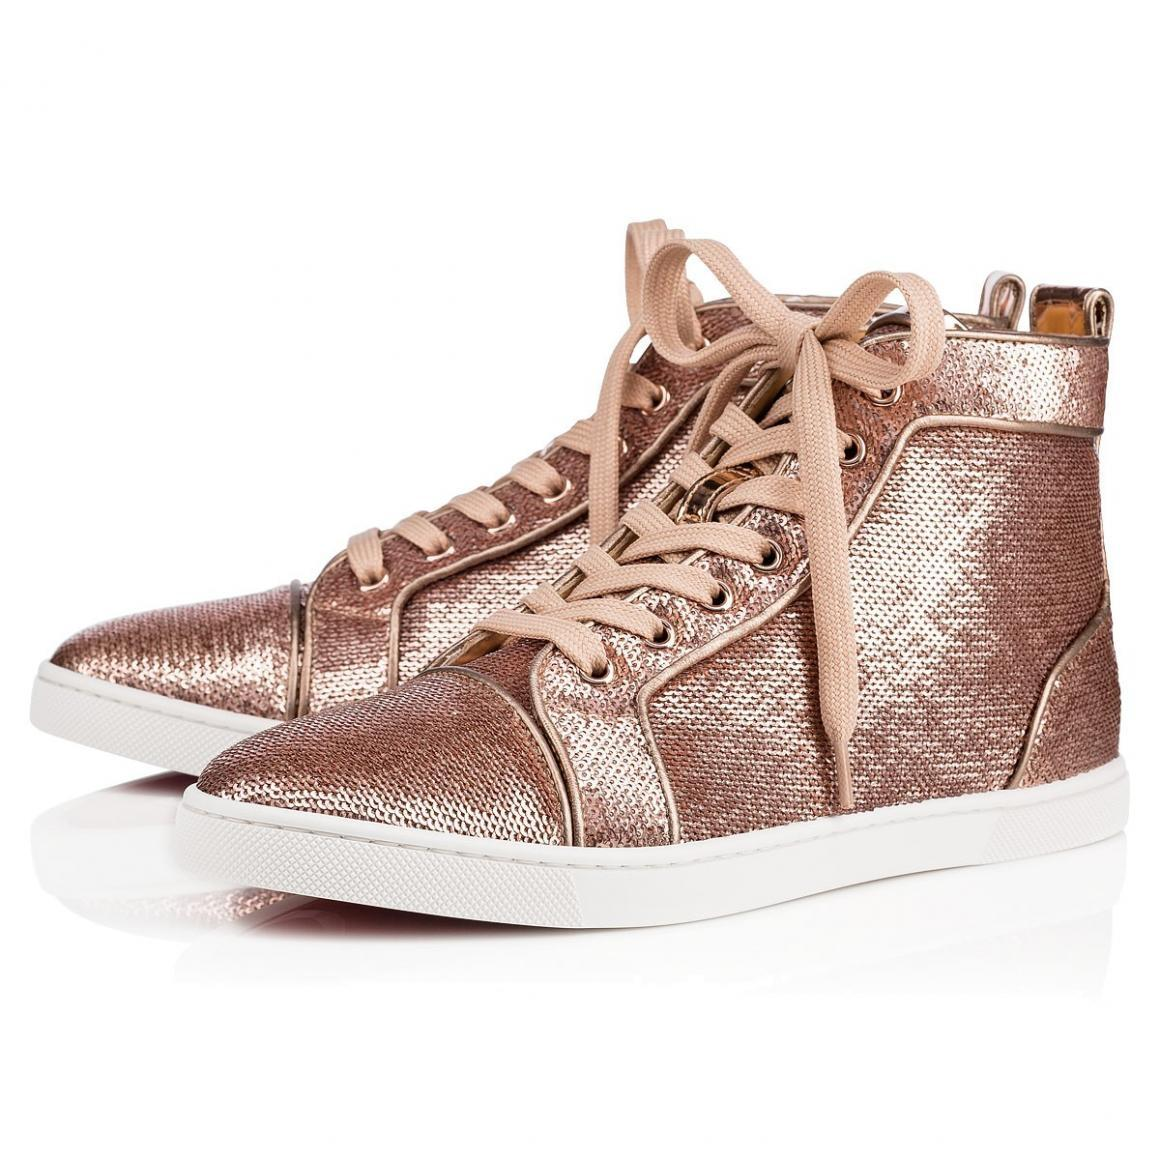 Christian Louboutin Pink Classic Sequin Embellished Bip-bip High Top Sneakers Trainers Sneakers Size EU 40 (Approx. US 10) Regular (M, B)